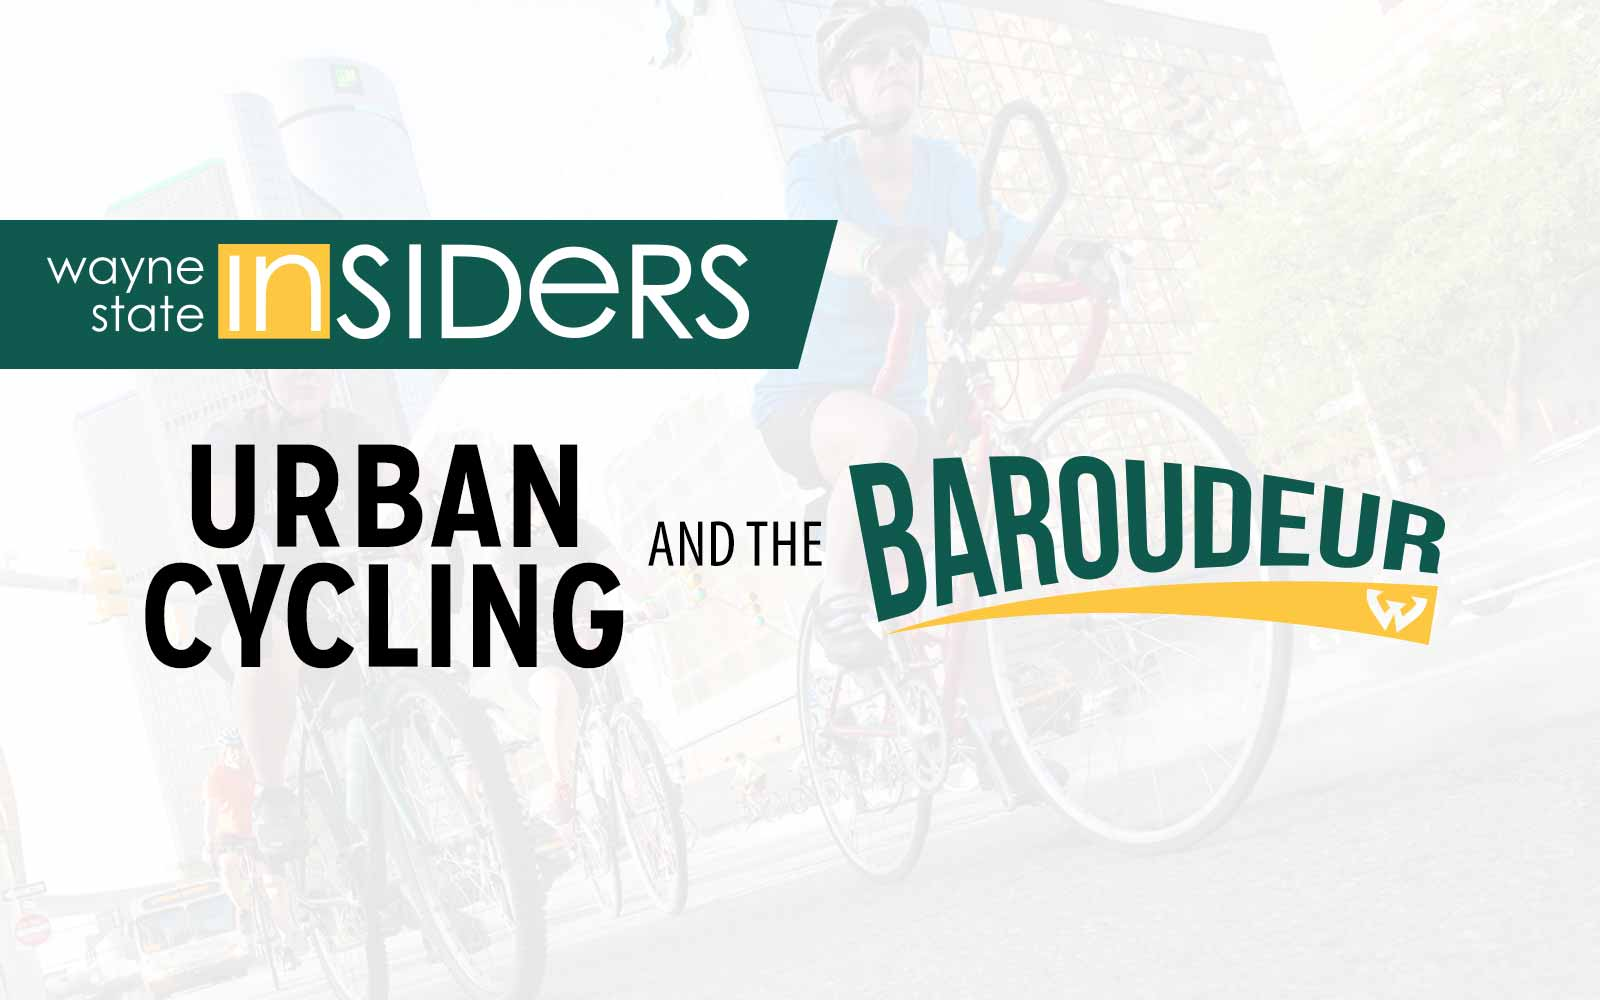 Learn about urban cycling and Wayne State's Baroudeur. Then join us for a bike ride through Midtown and the Dequindre Cut Greenway.